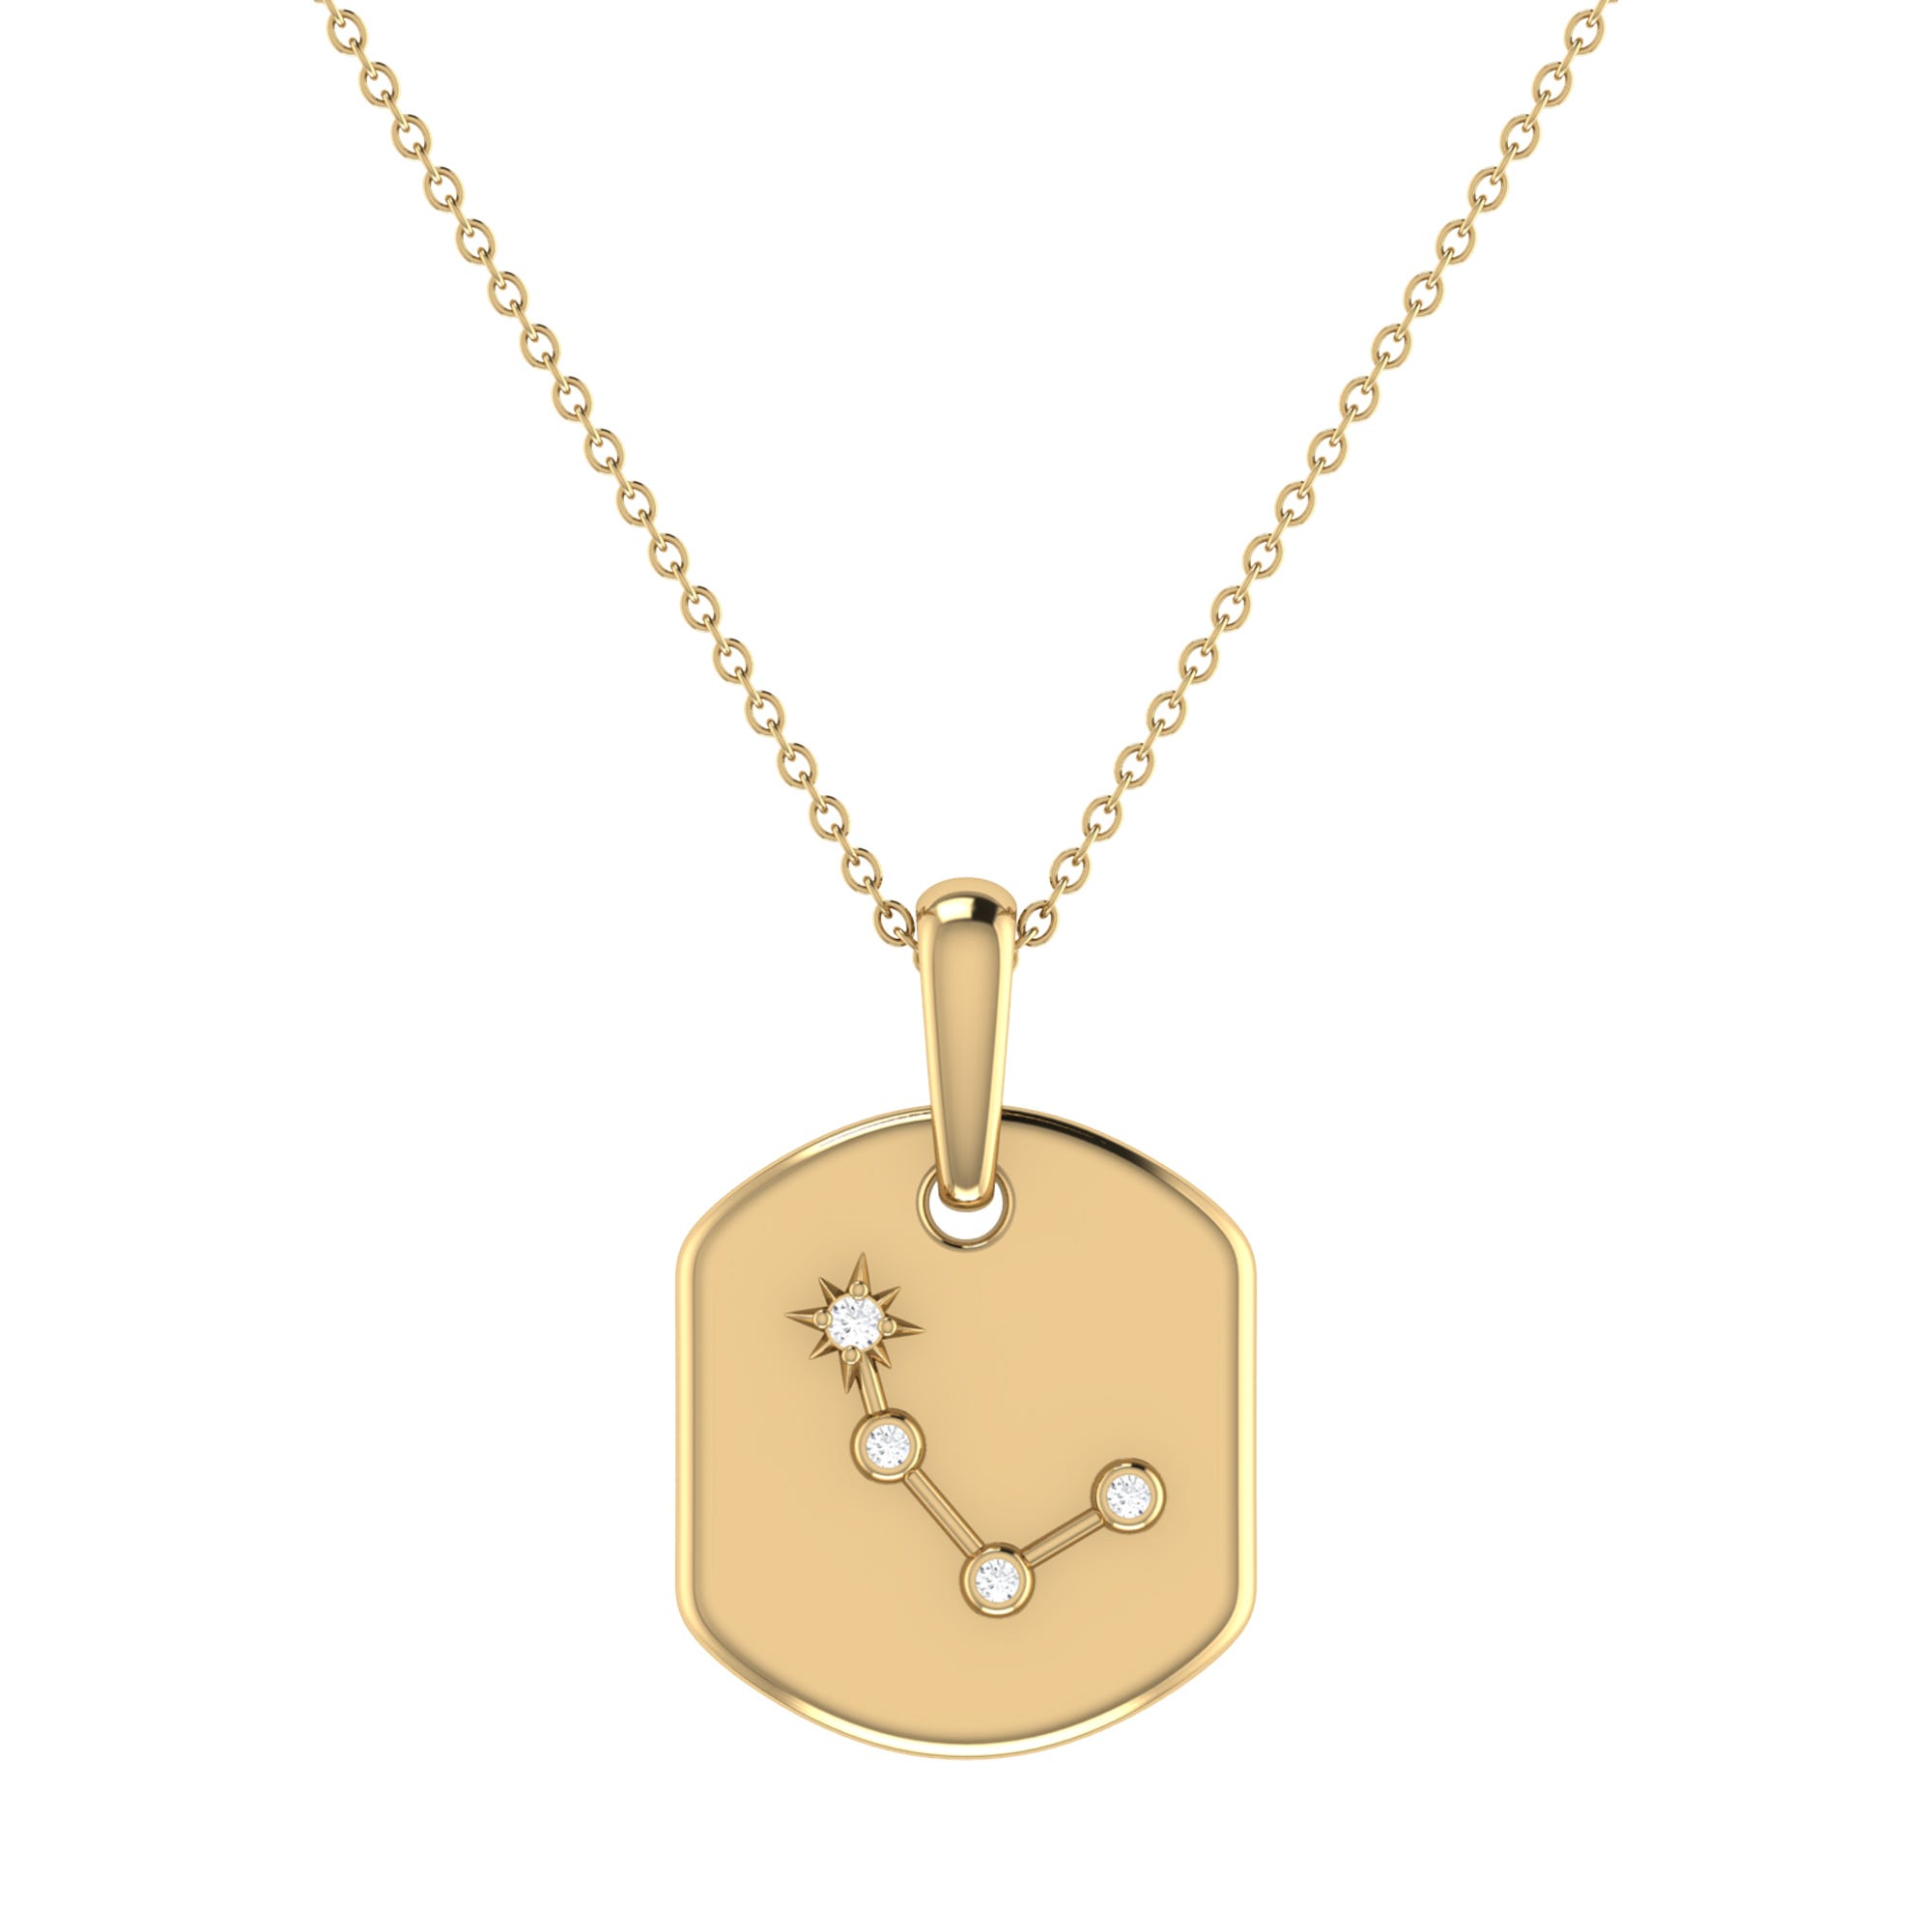 Diamond Aries Constellation Tag Necklace in 14k Yellow Gold Plated Sterling Silver